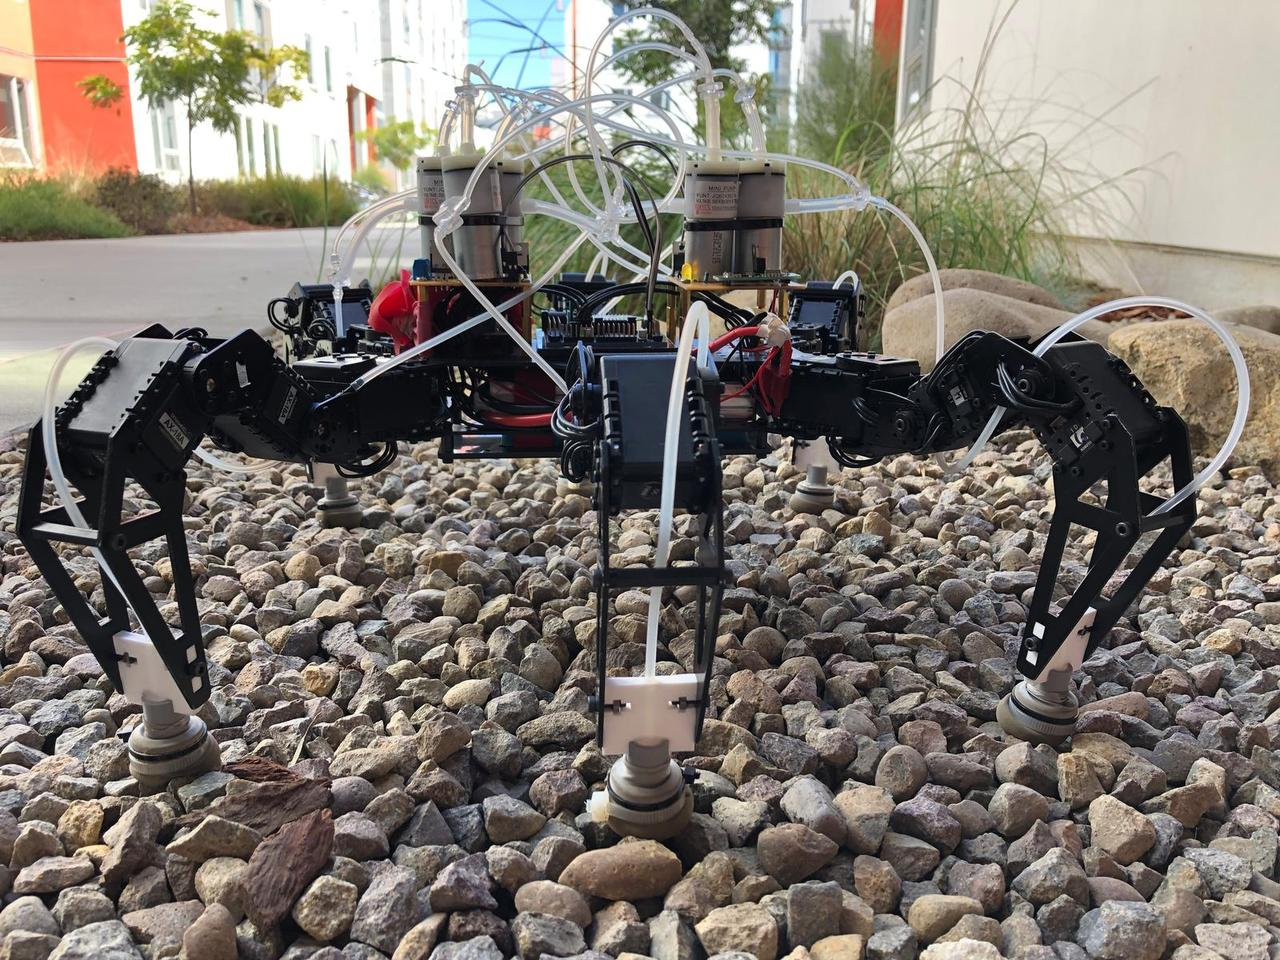 The feet have been tested on a commercially available hexapod robot